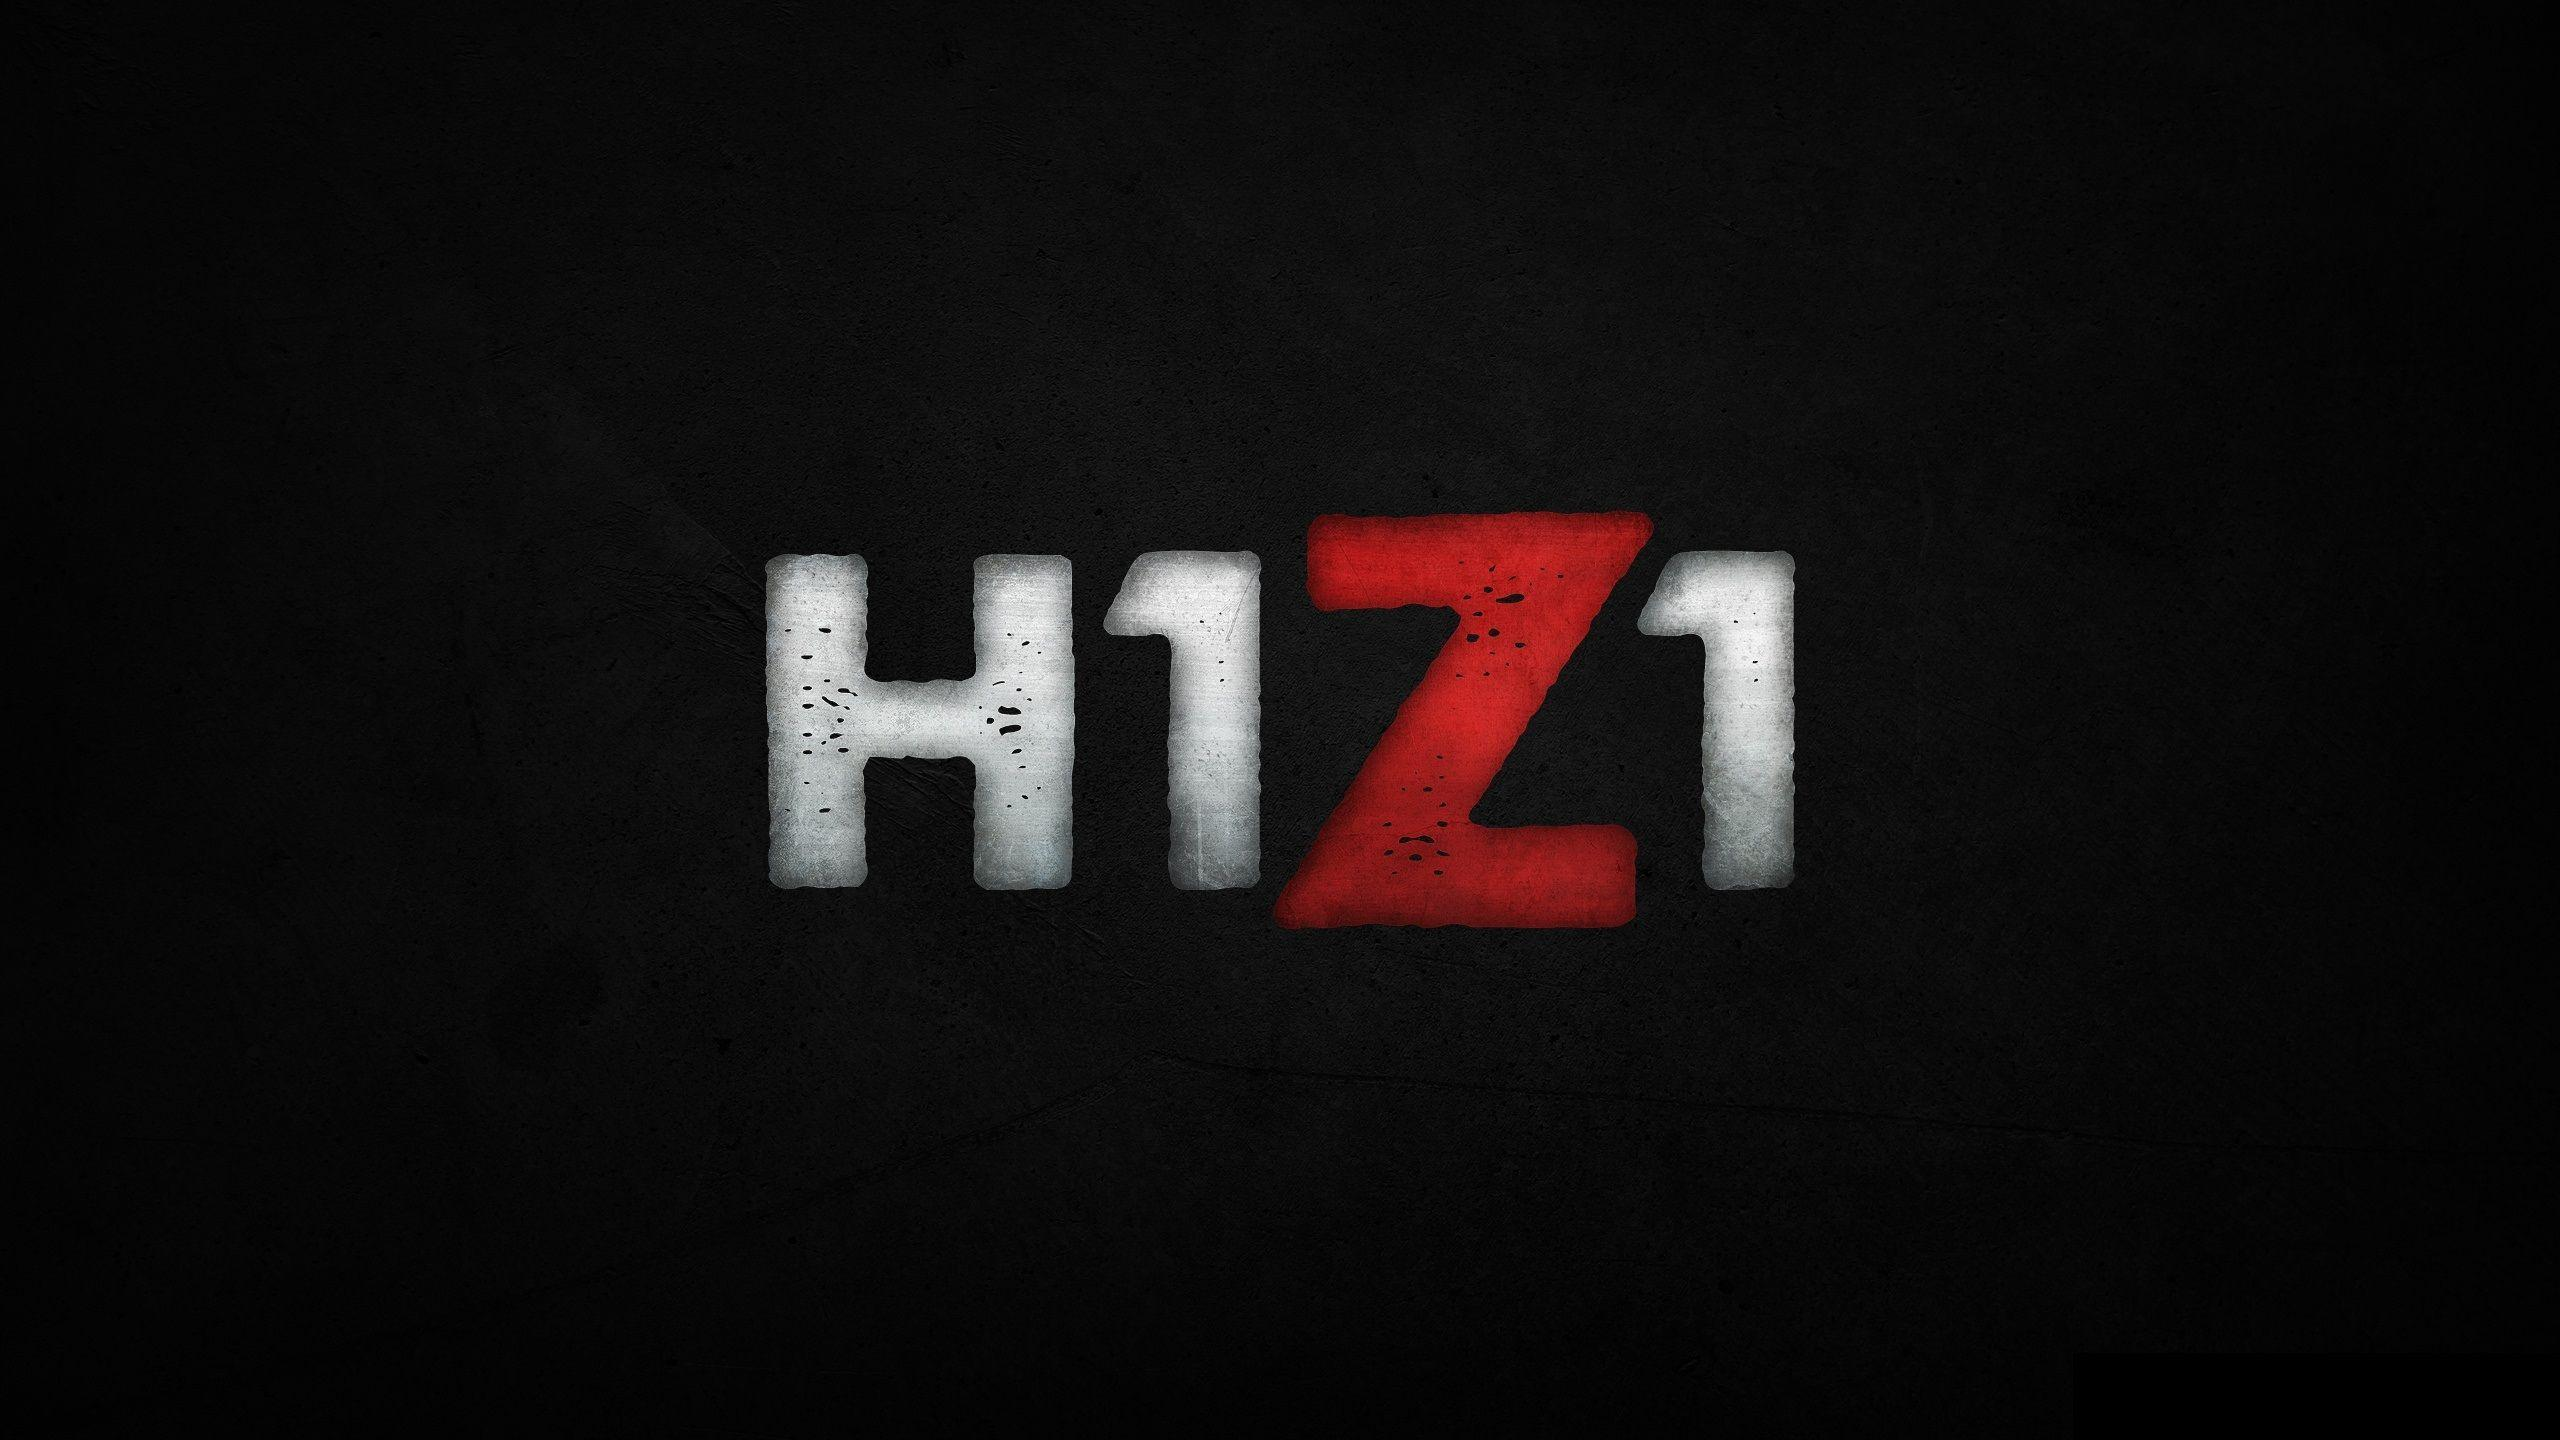 h1z1: king of the kill wallpapers - wallpaper cave